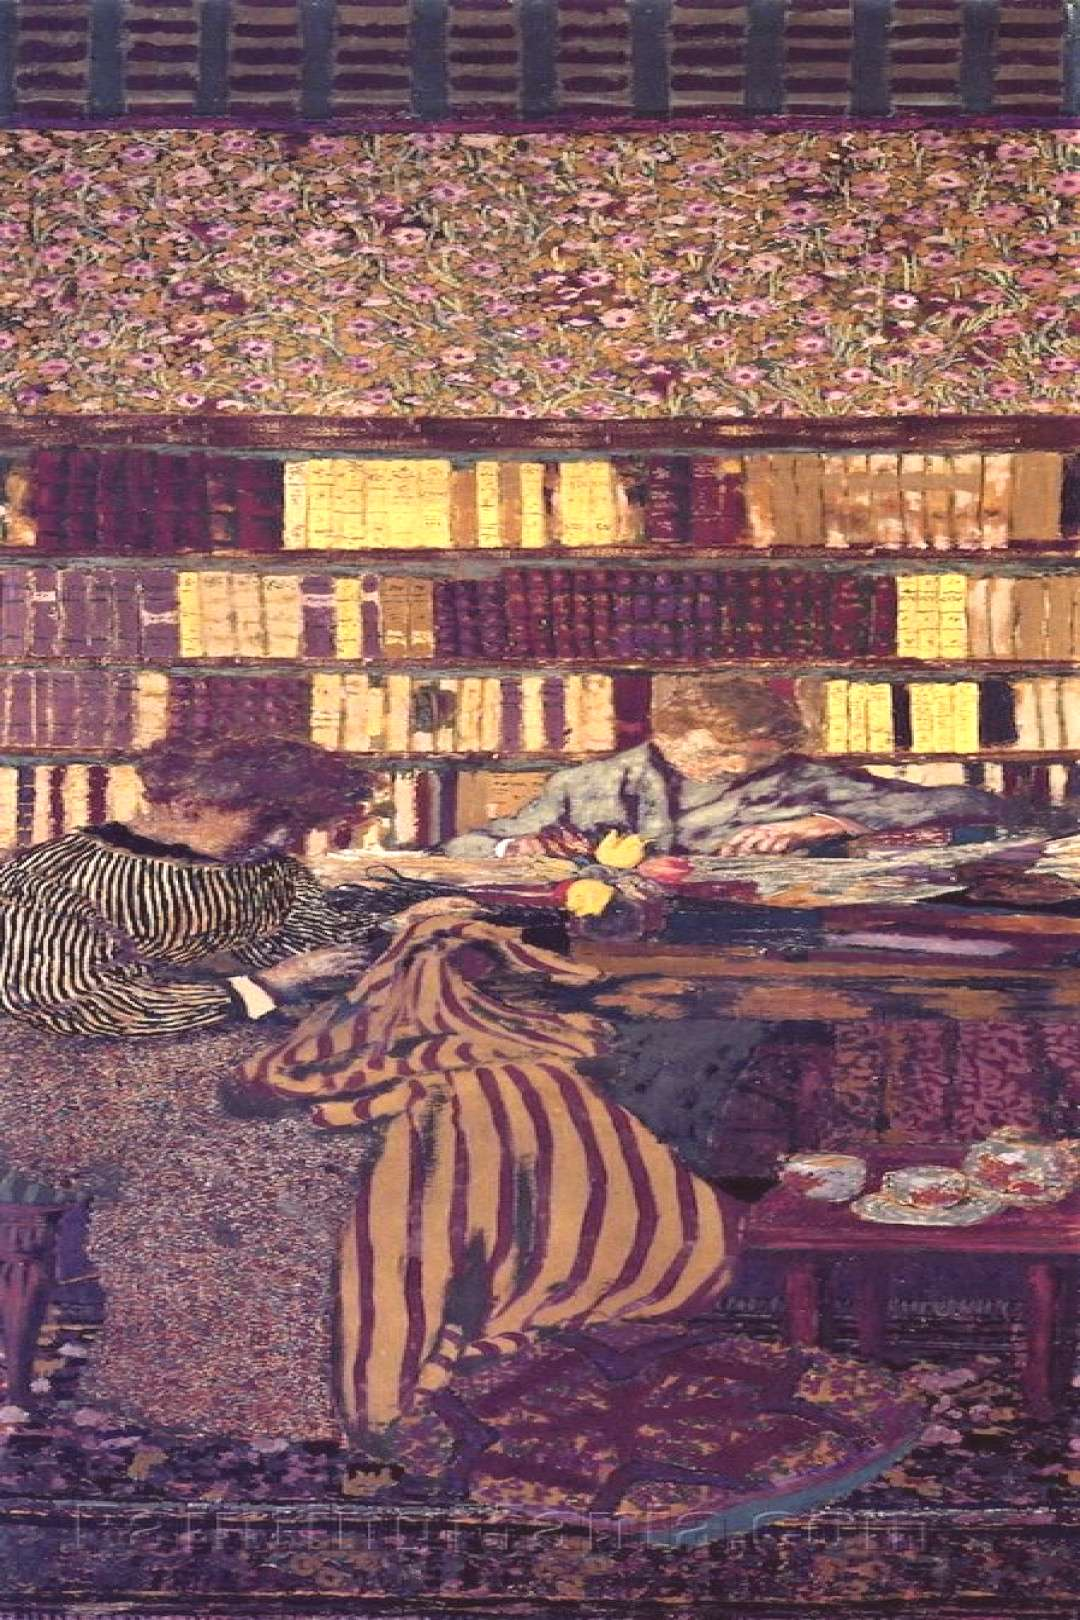 Figures in an Interior: Work by Edouard Vuillard